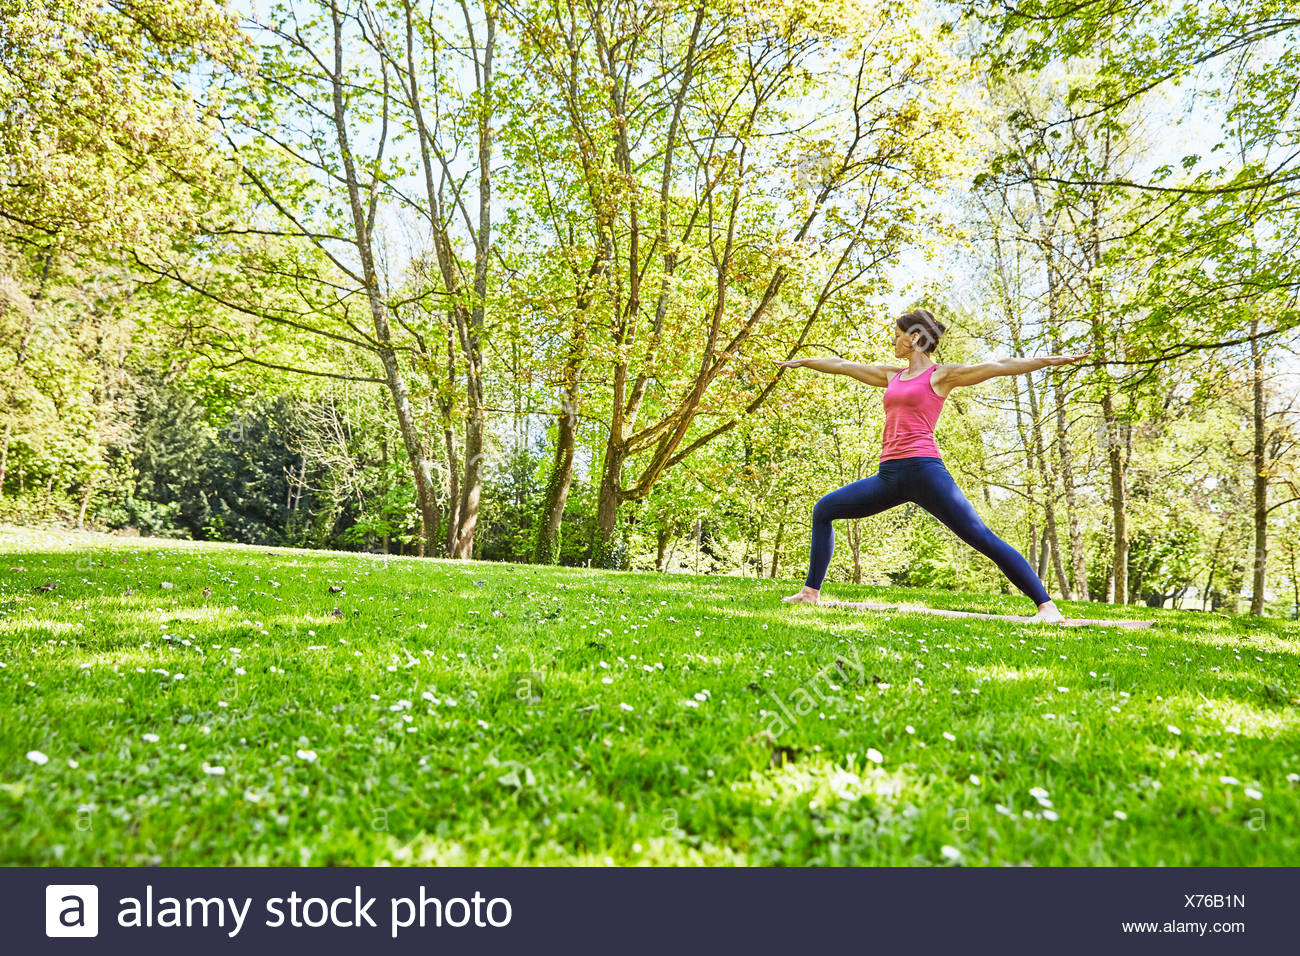 Woman, arms open, legs apart in yoga position - Stock Image